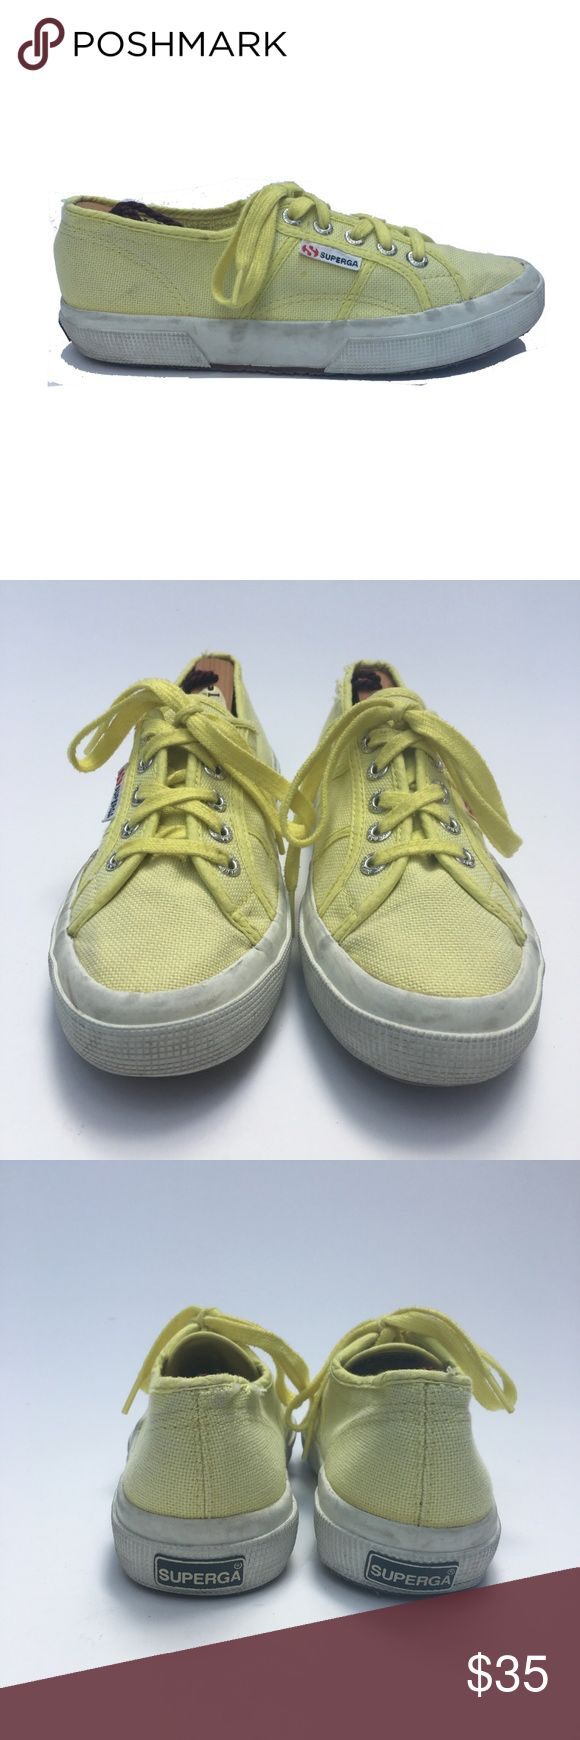 Superga Classic Sunny Yellow Sneakers Shoes 6.5 Superga Women's Sneakers Yellow Casual Shoes  Classic Lace Up Tennis  Sport: Casual Size: 6.5 US 37 EU   Color: Yellow  Pattern: Solid Upper: Cotton Lining: Canvas Sole: Rubber Country: Vietnam Style #: S000010-V05 Cut #: 18627Z1514 Condition: Pre-Owned Good, has wear, but LOTS of Life! Comes from a pet and smoke free environment!  Please review pictures and contact me if you have any questions. WT: 1.12 SKU: WAS011; PC All measurements are…